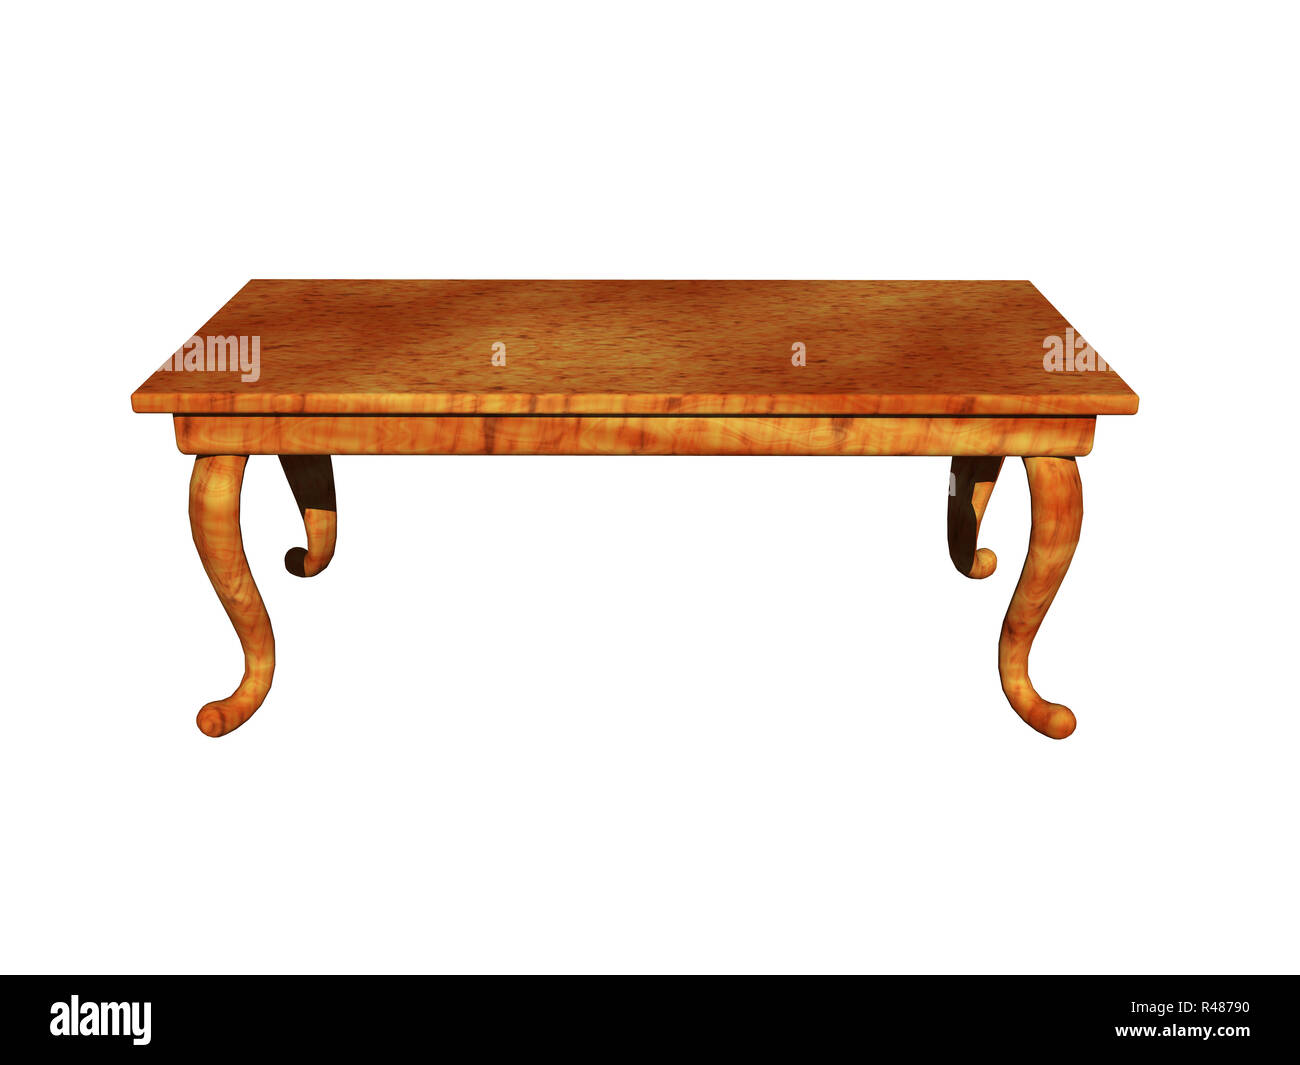 antique table free - Stock Image